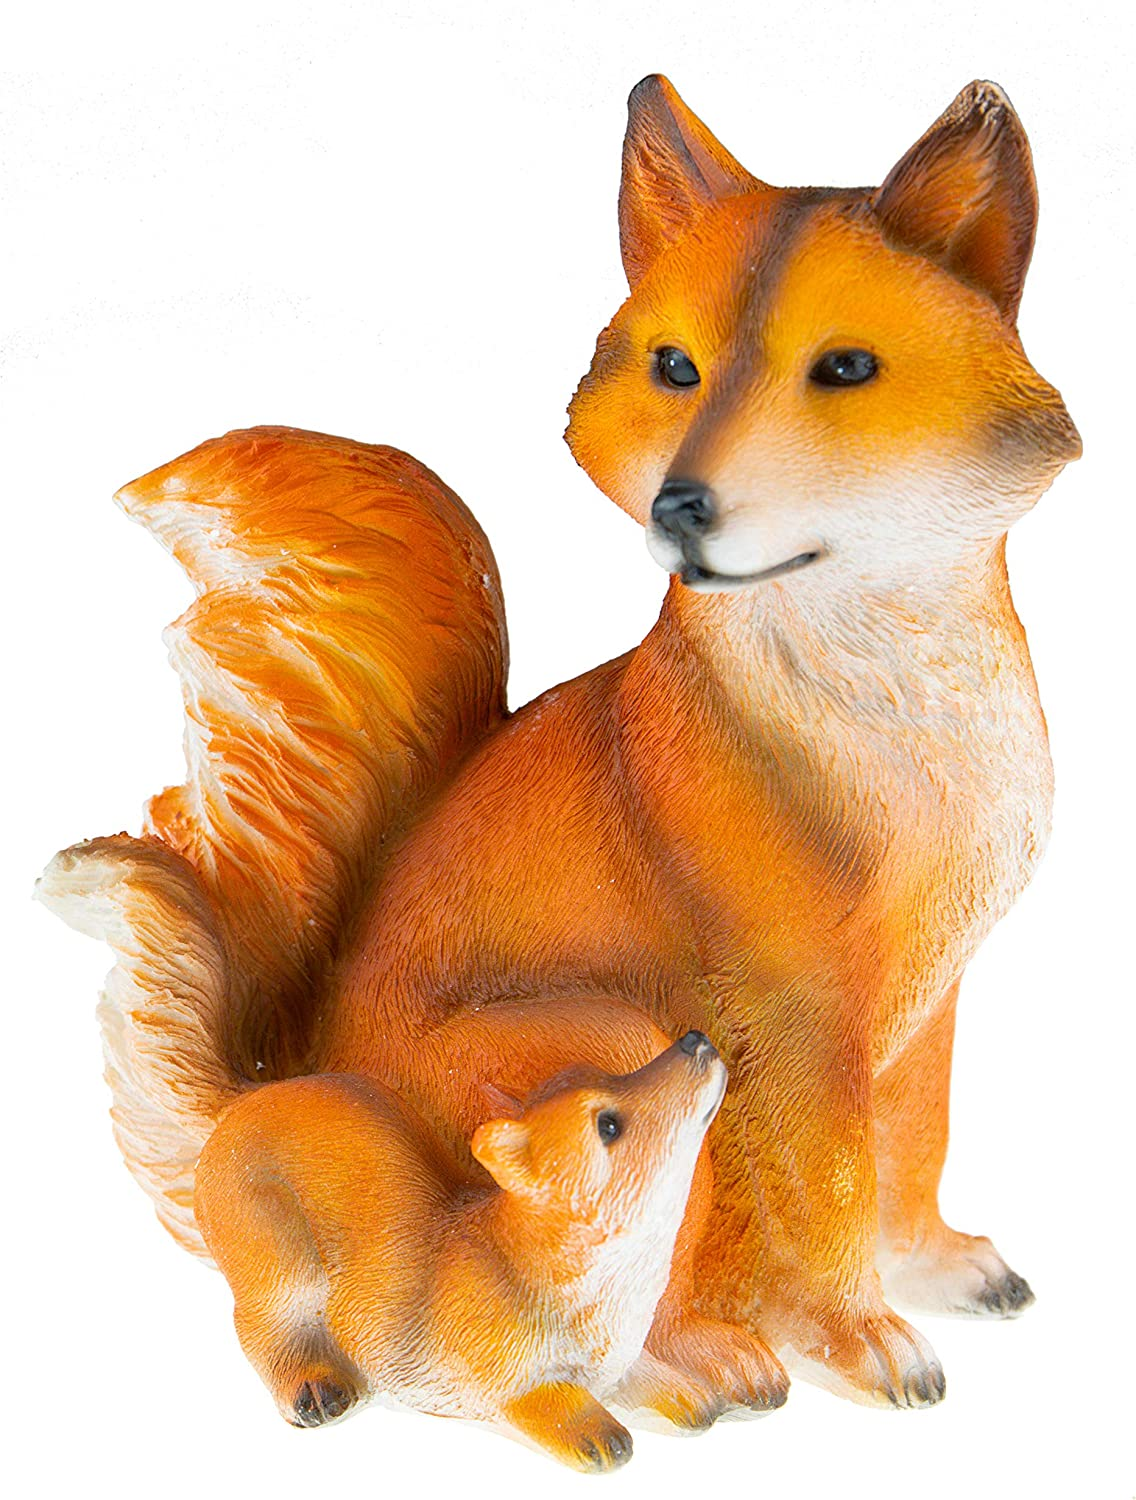 Cute Fox Family Resin Garden Statue Decoration | Outdoor Lawn Yard Polyresin Animal Figurine Sculpture Ornament Décor